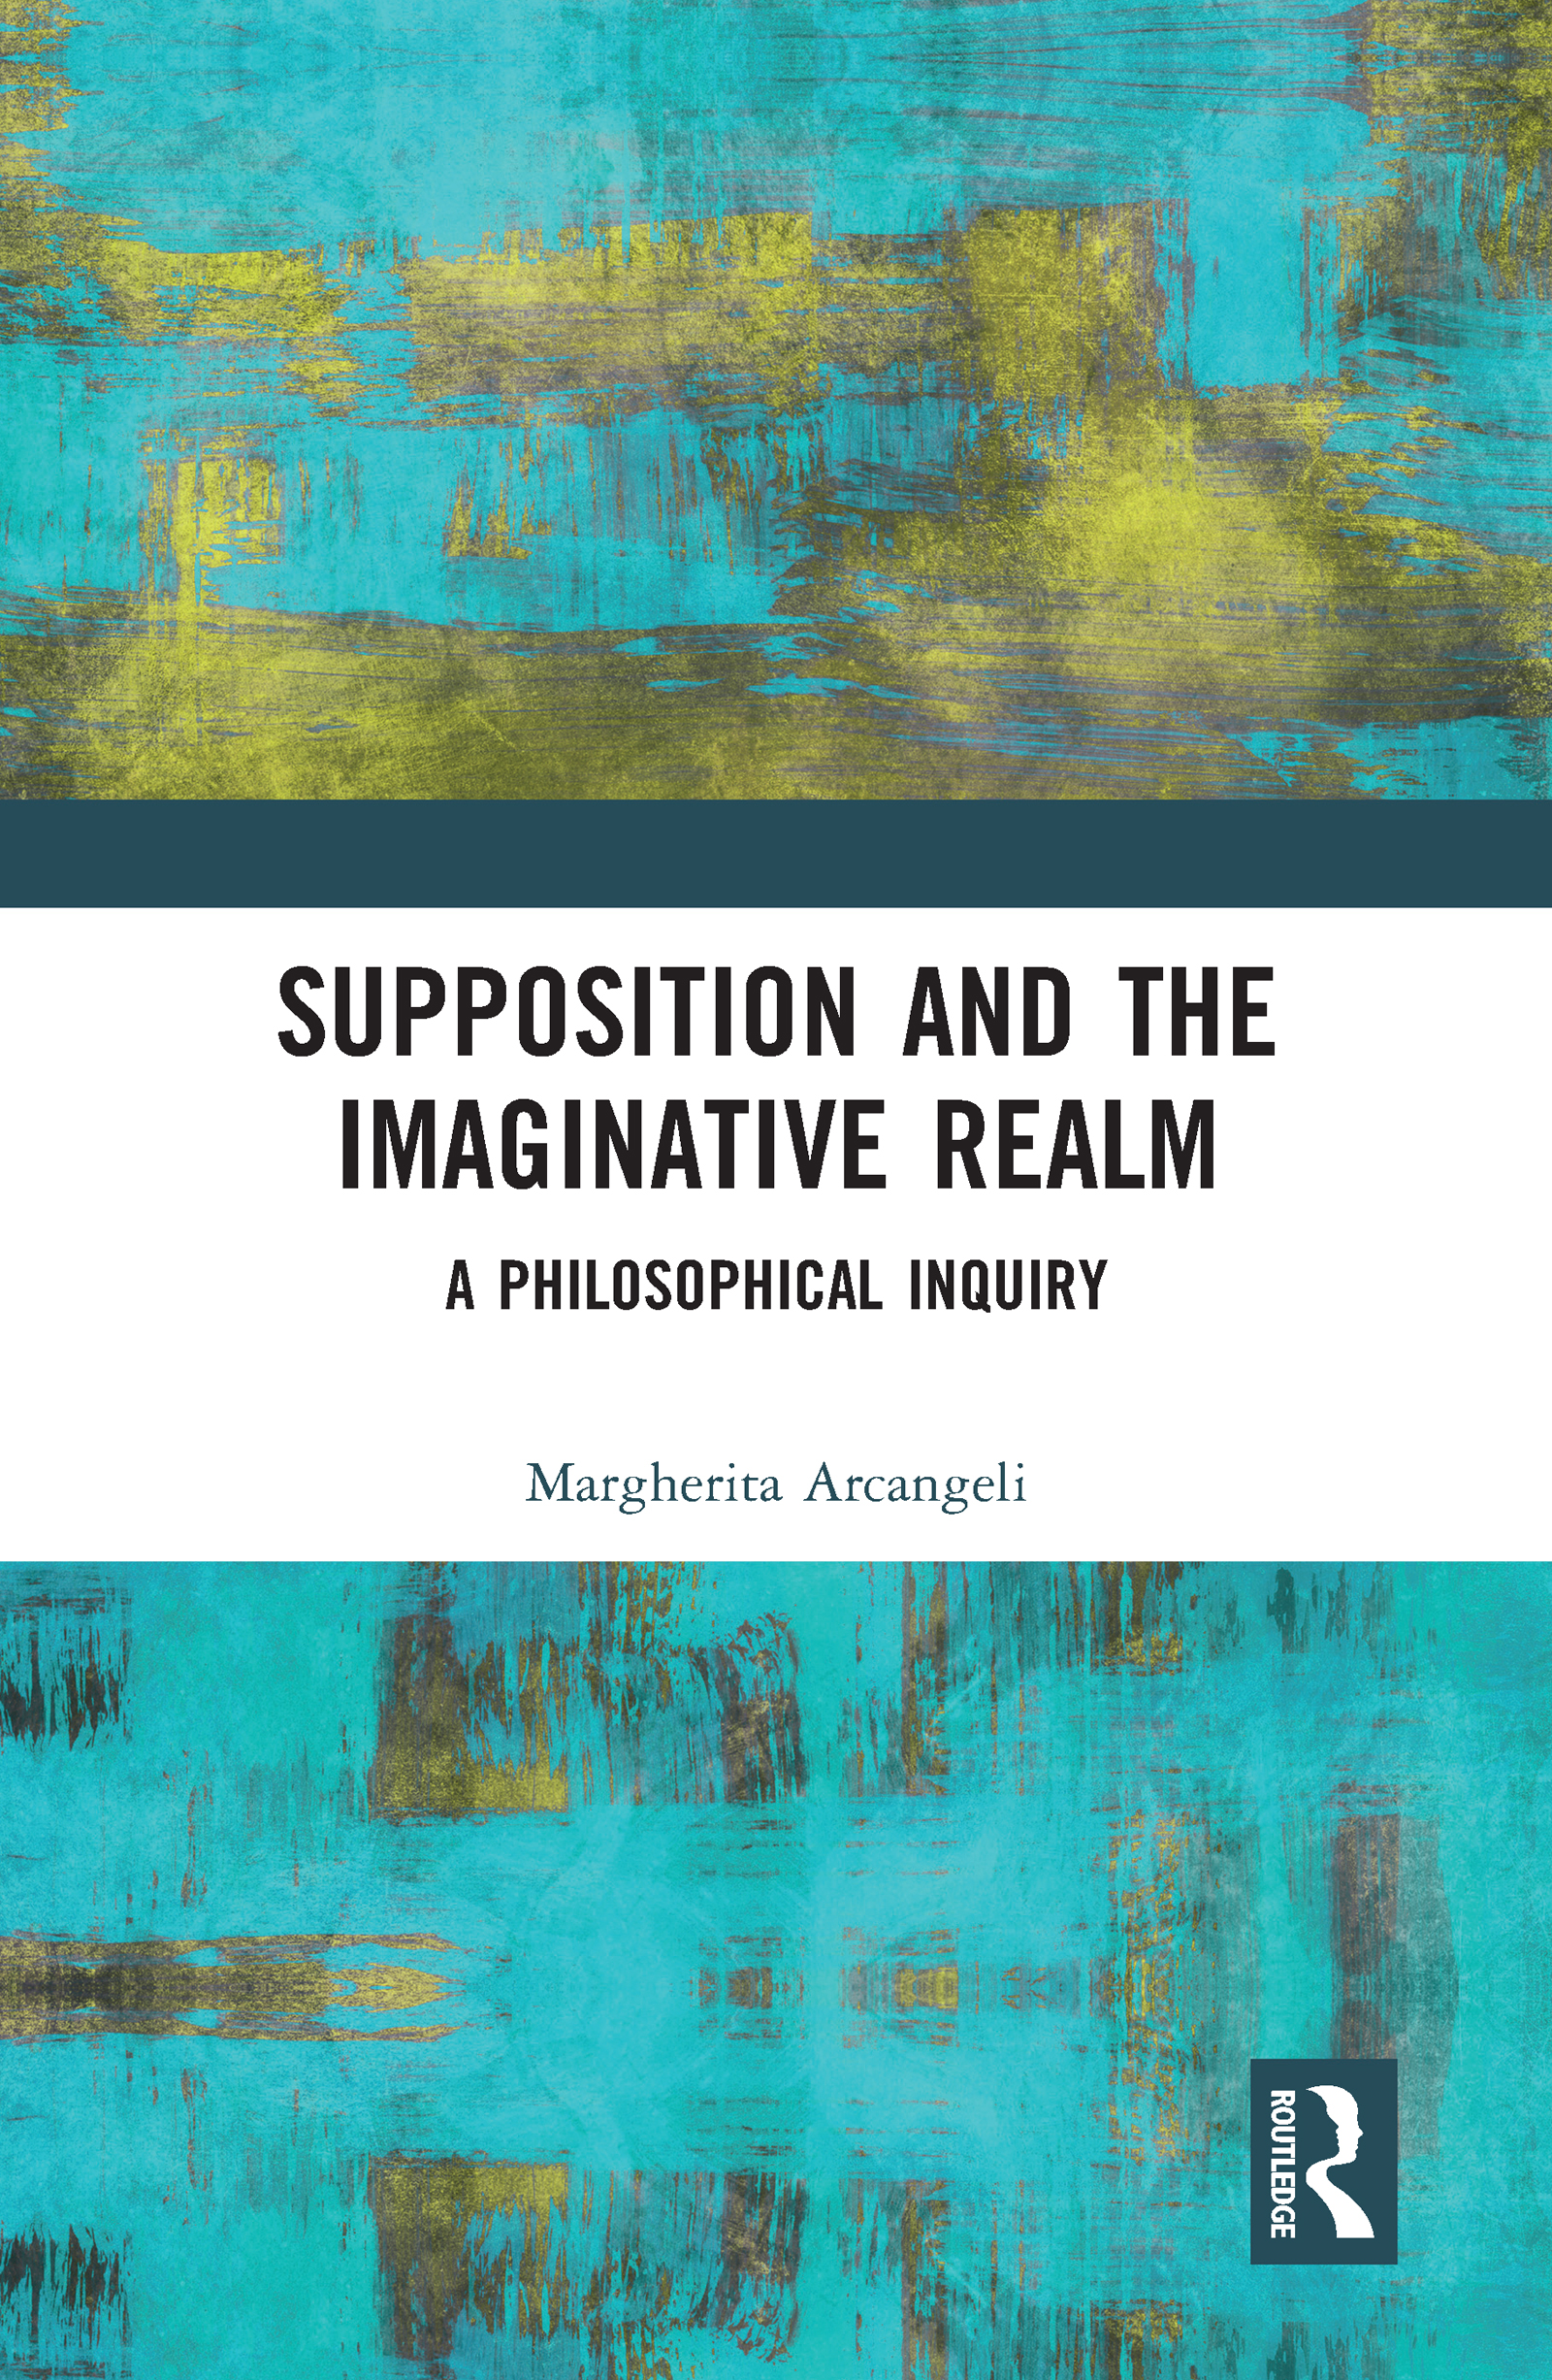 Supposition and the Imaginative Realm